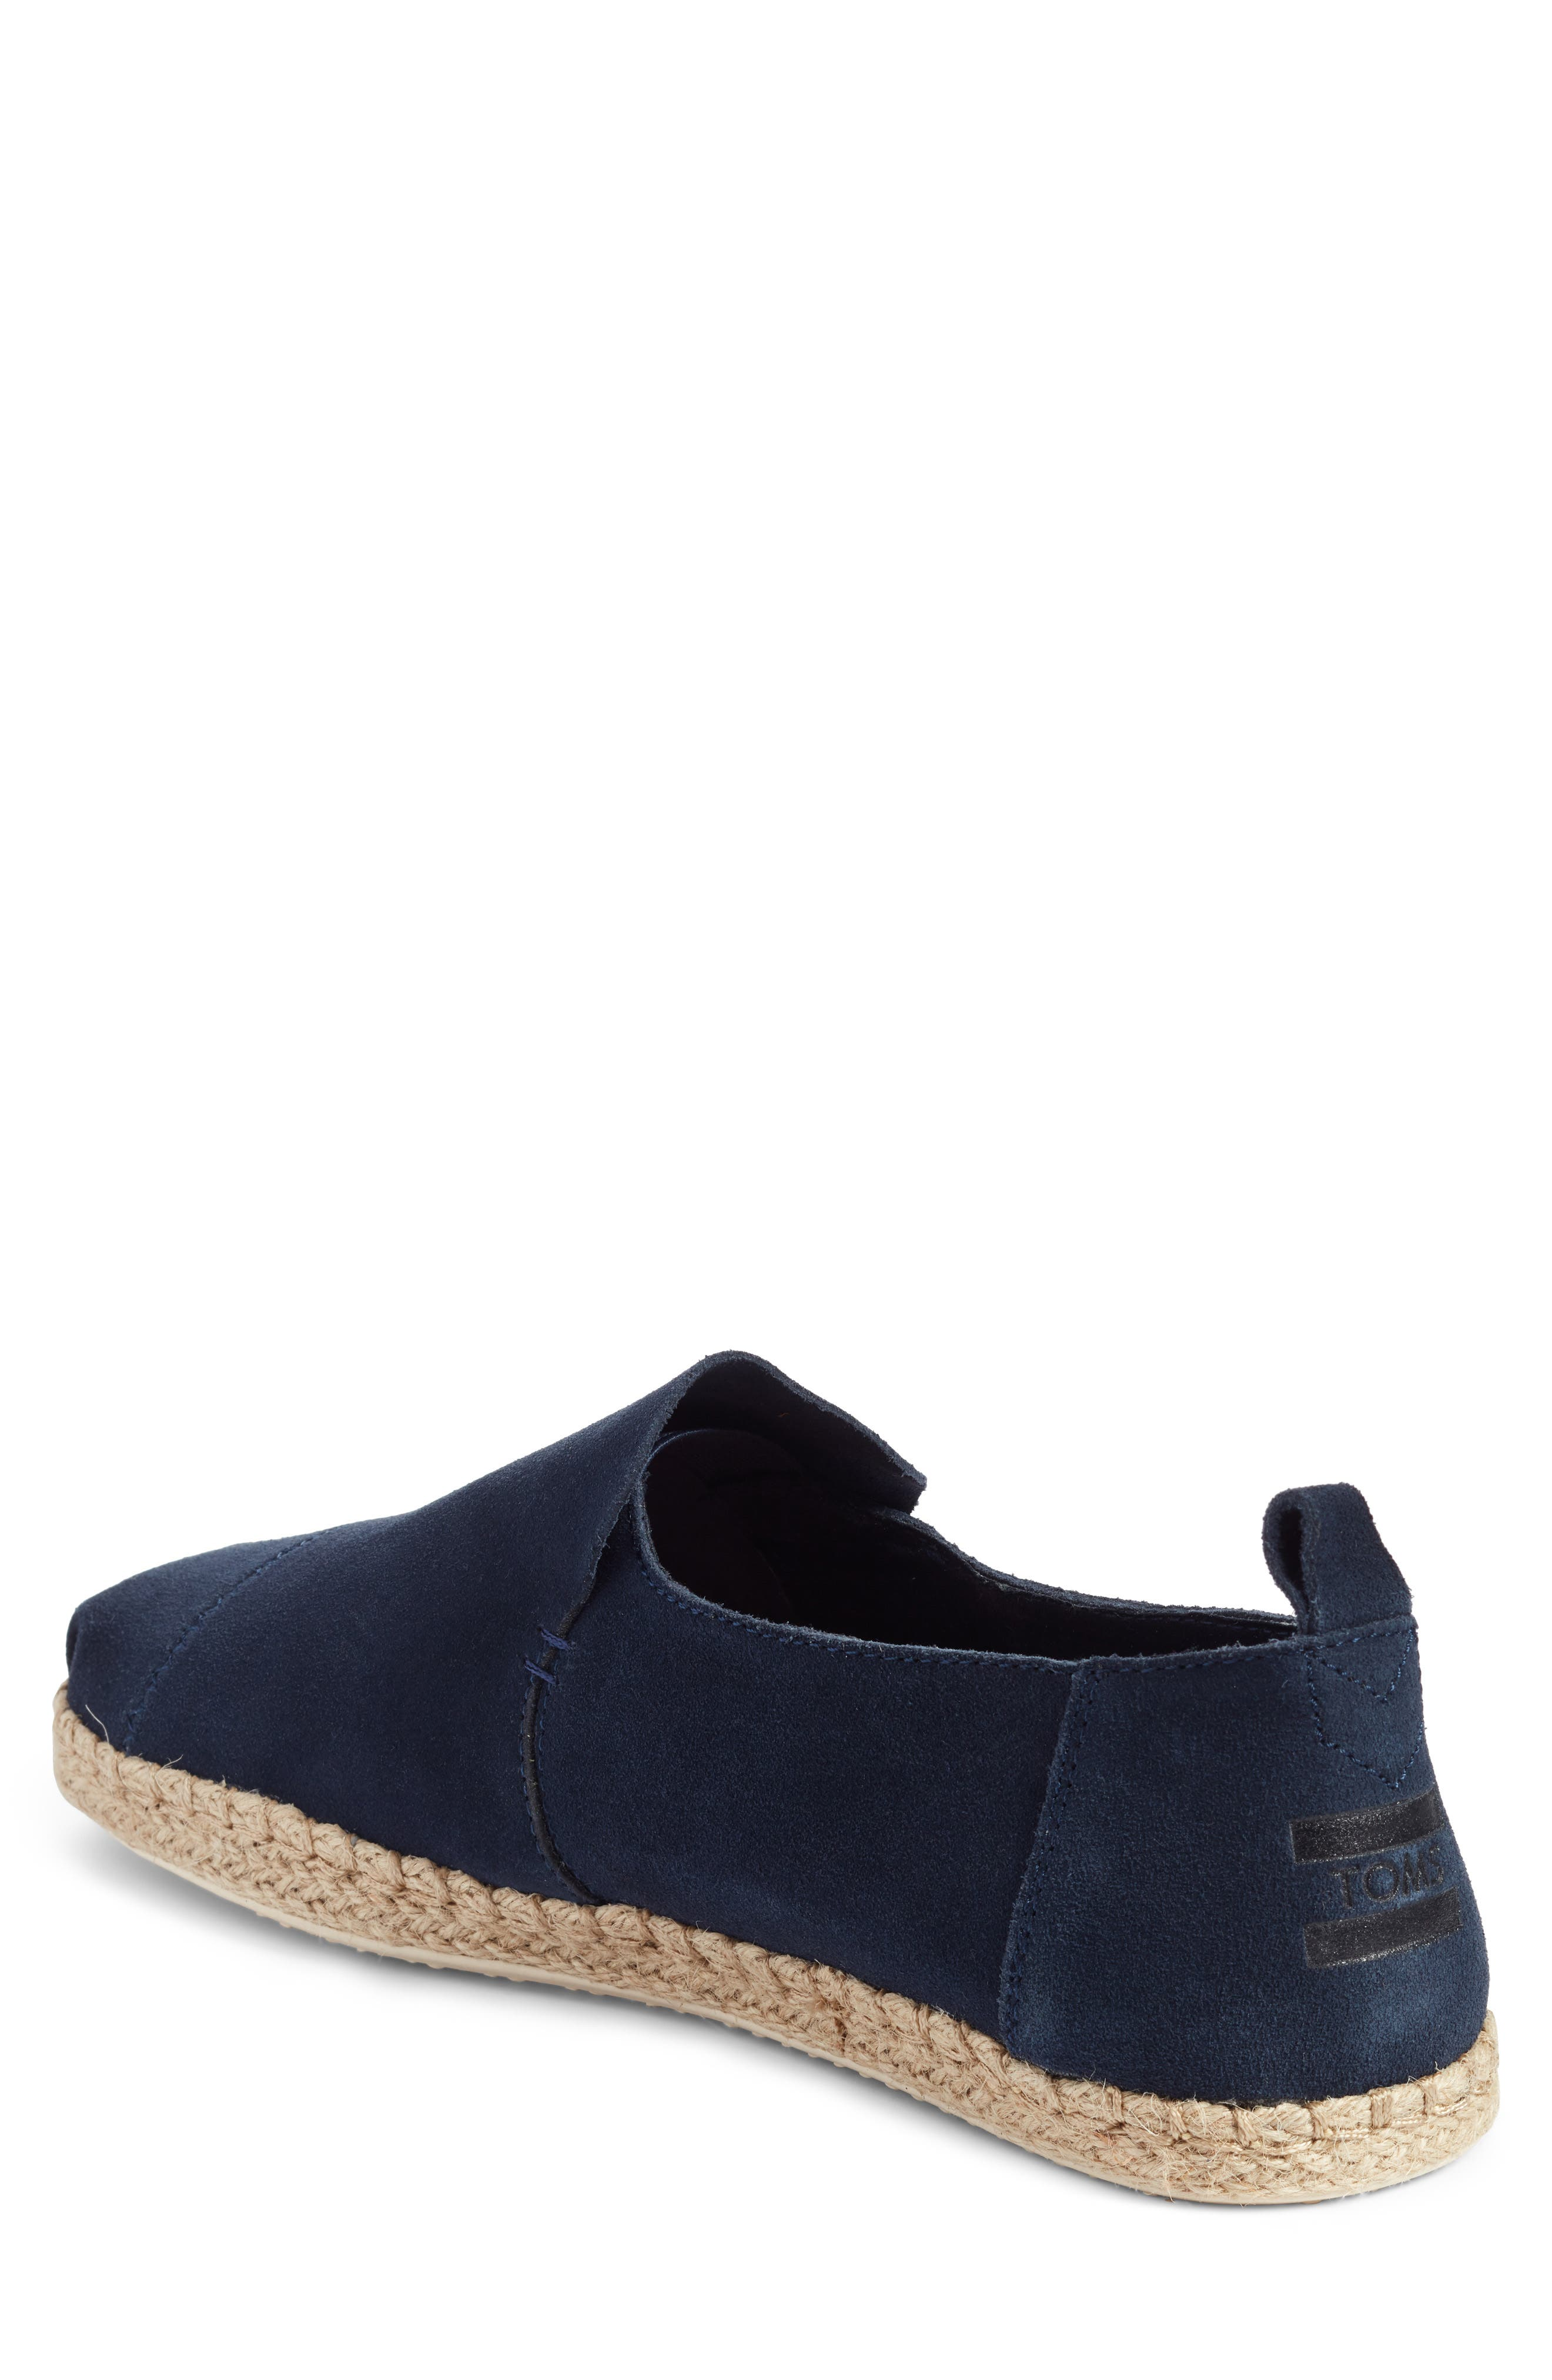 Deconstructed Alpargata,                             Alternate thumbnail 2, color,                             Navy Suede